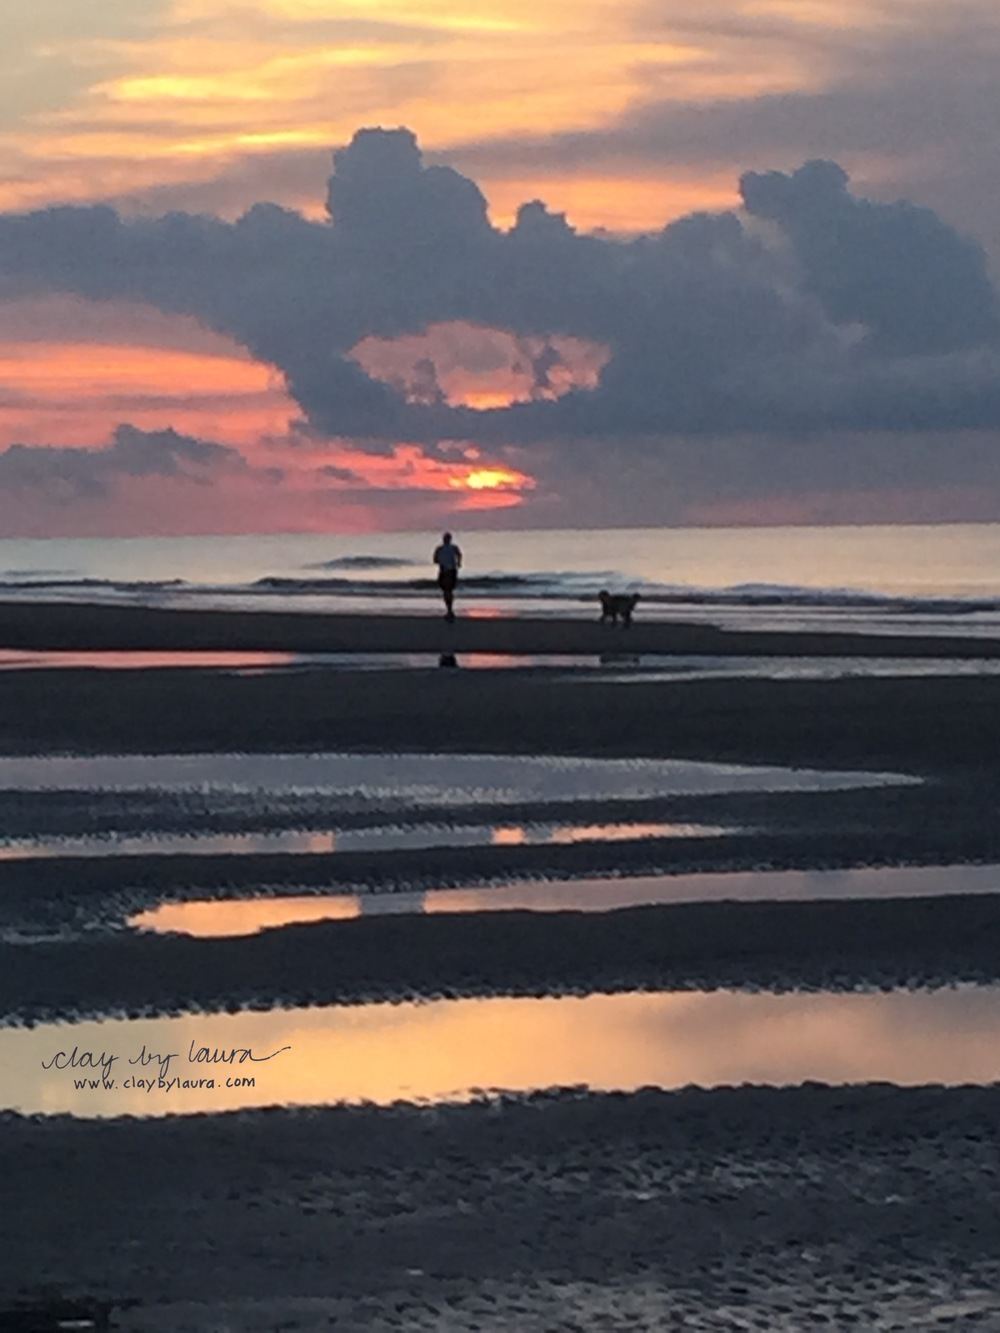 Sunrise on Hilton Head is filled with natural beauty. It's surely one of the things my family misses about living here. Luckily, we can all come and revisit the activities and friends we knew here and regain some of that special balance we need in our lives.